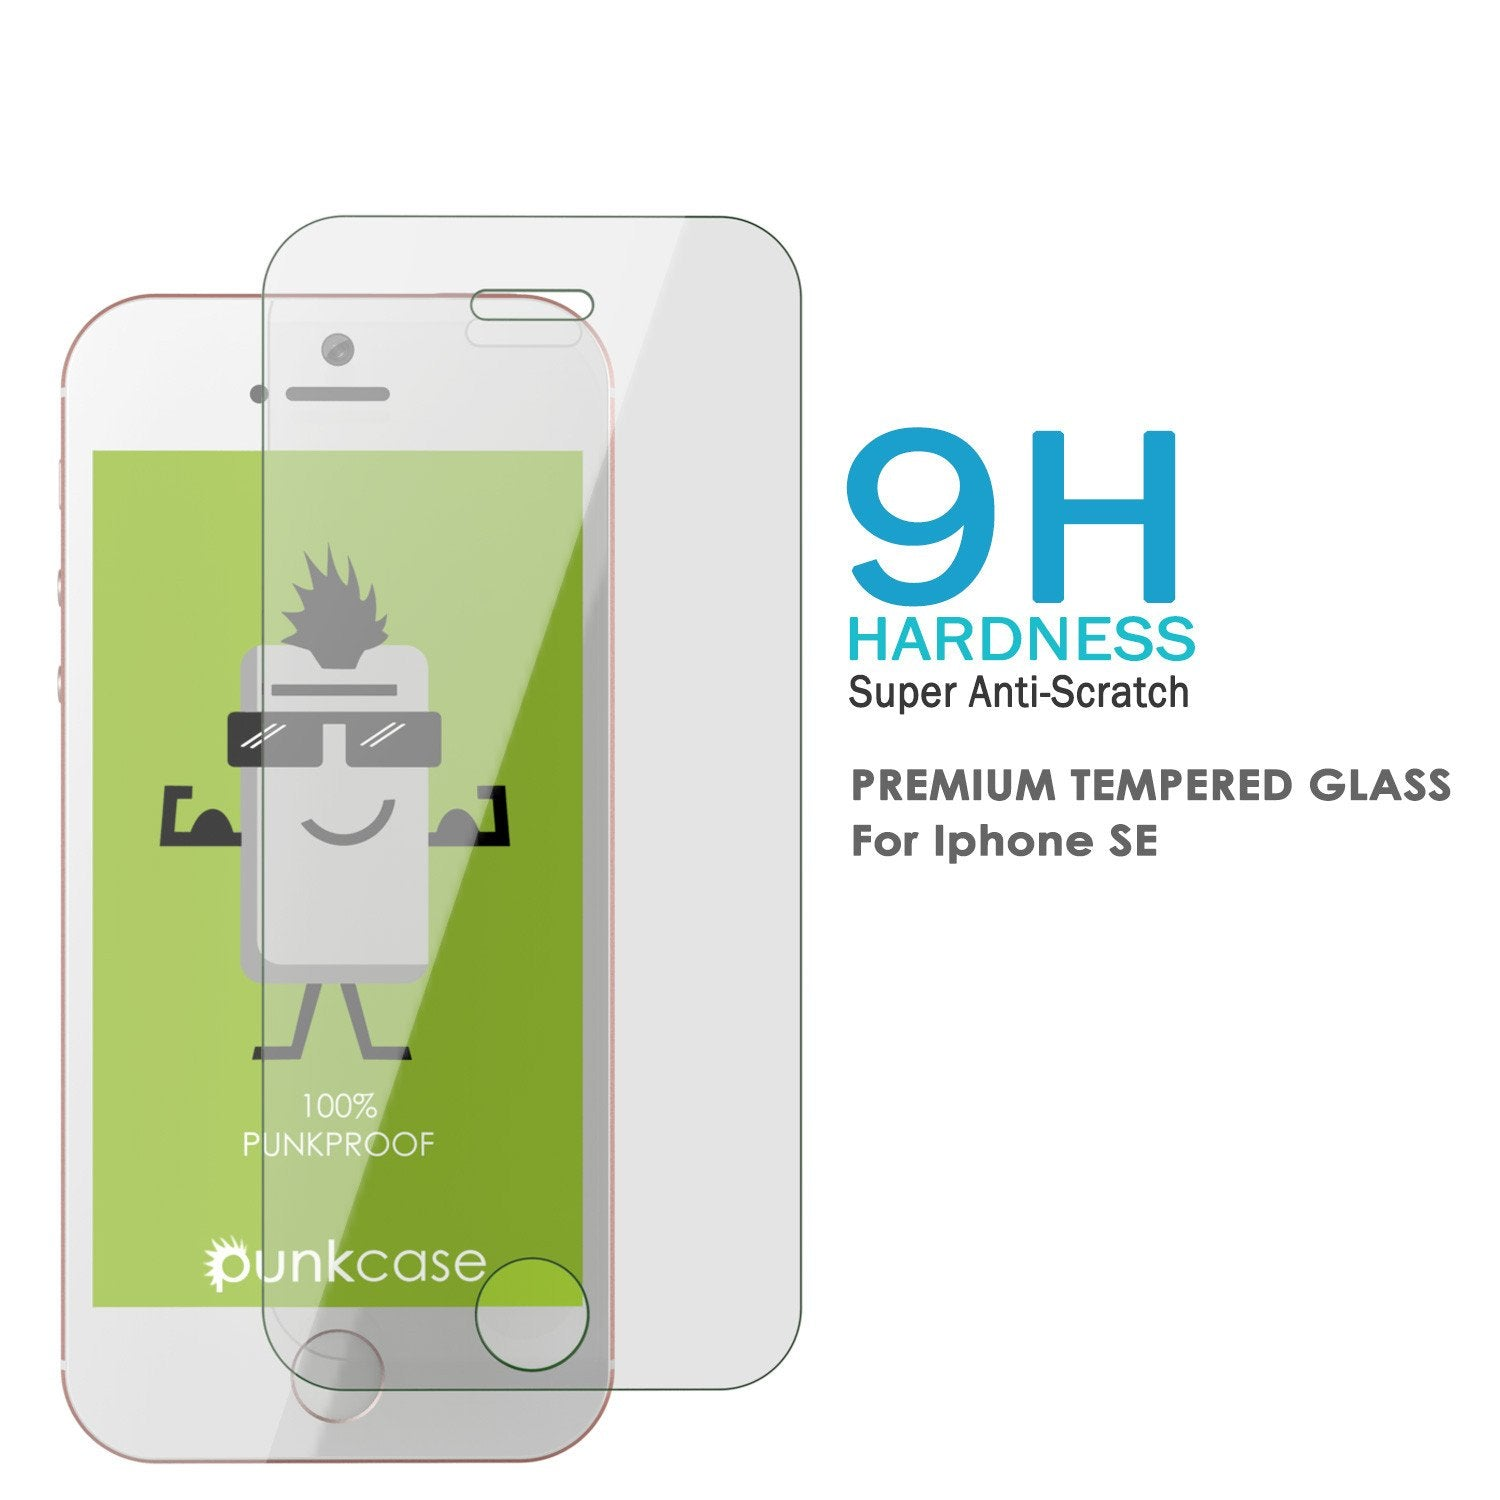 iPhone 5/5s/5c Punkcase Glass SHIELD Tempered Glass Screen Protector 0.33mm Thick 9H Glass Screen